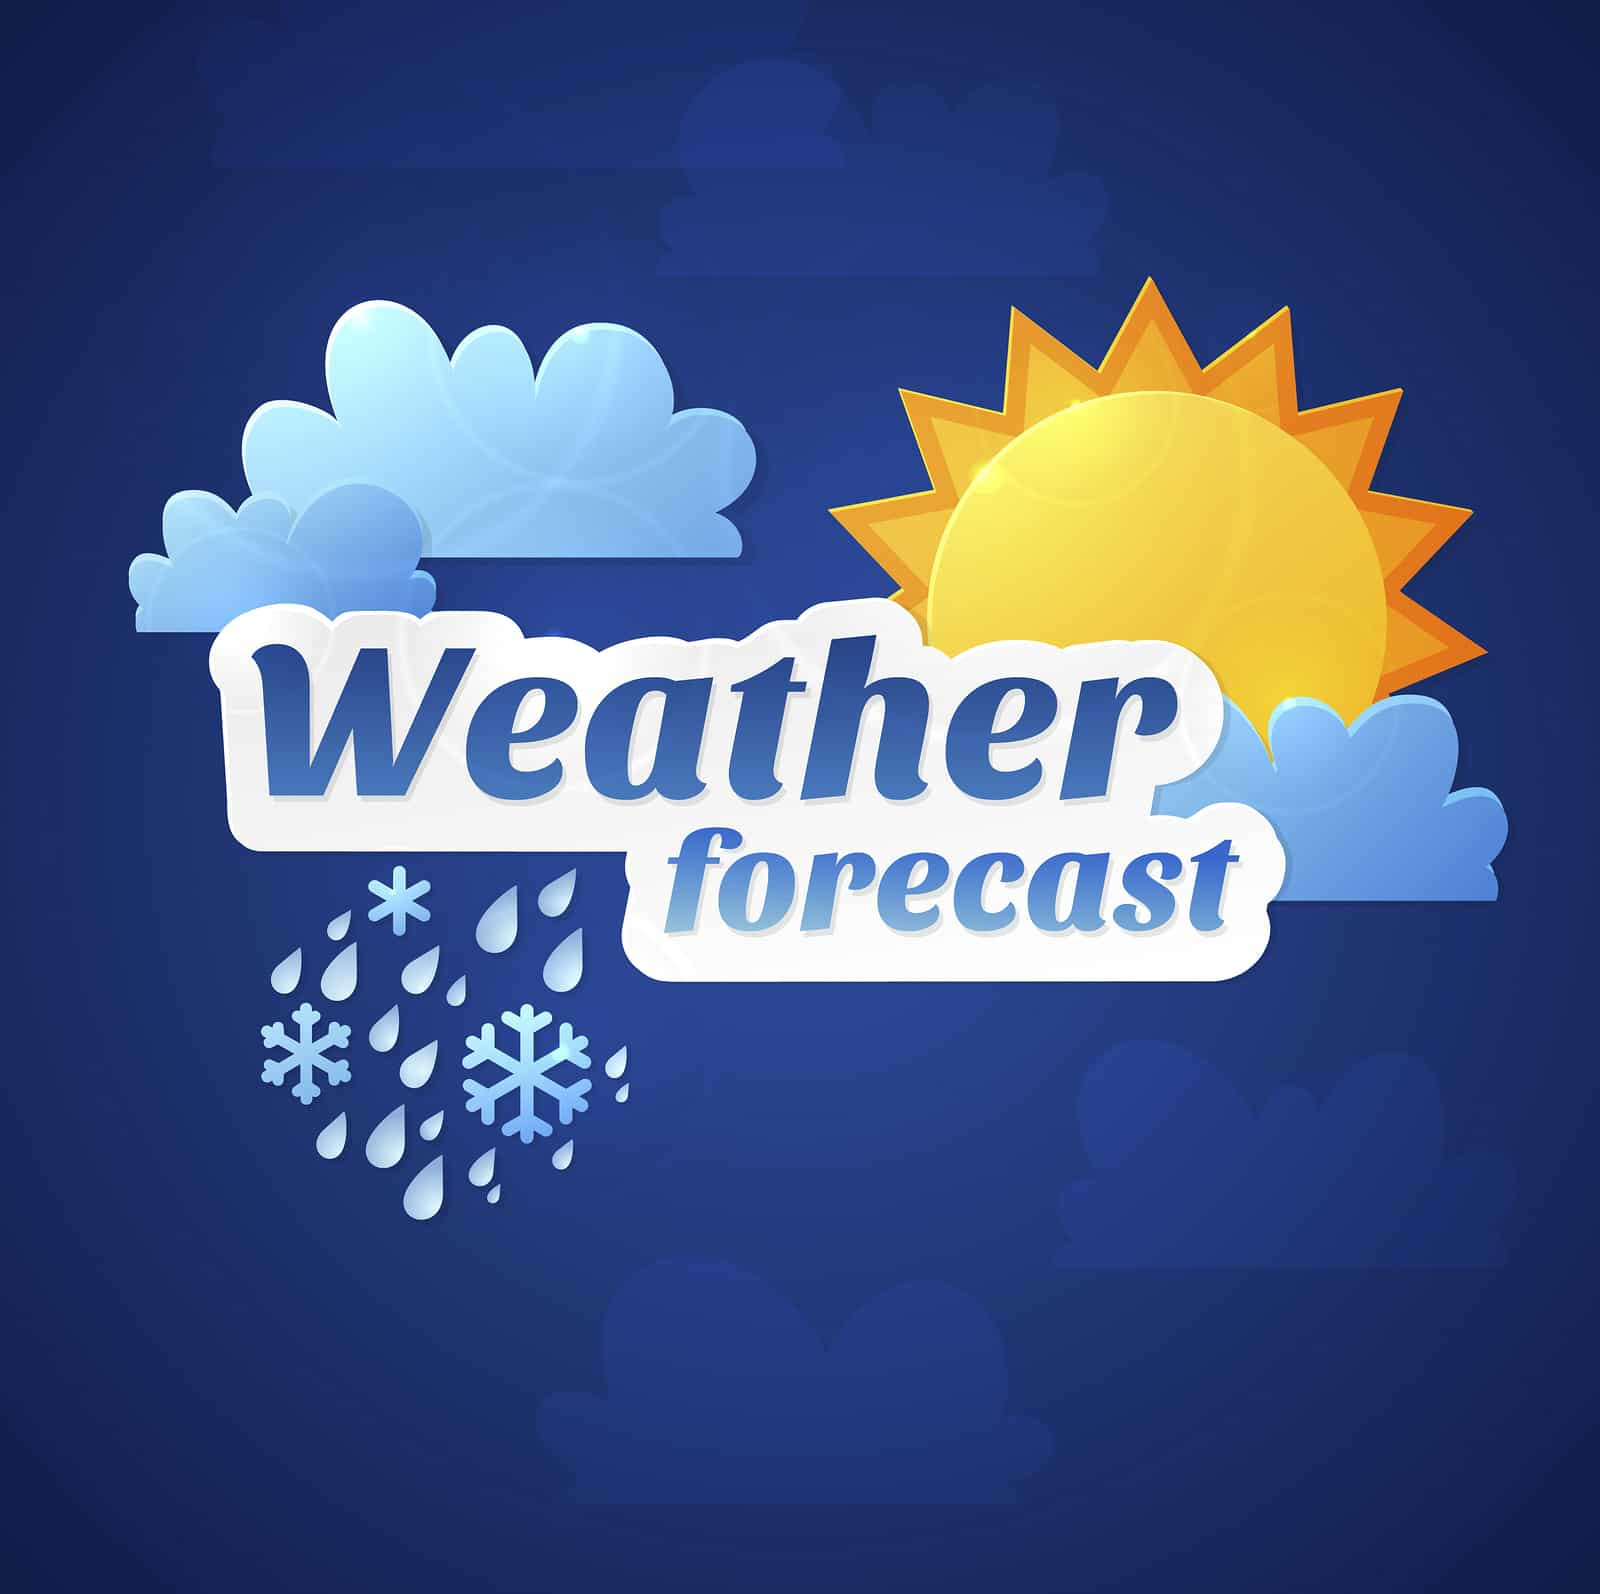 St Louis Weather Conditions & Forecast, March 3, 2018